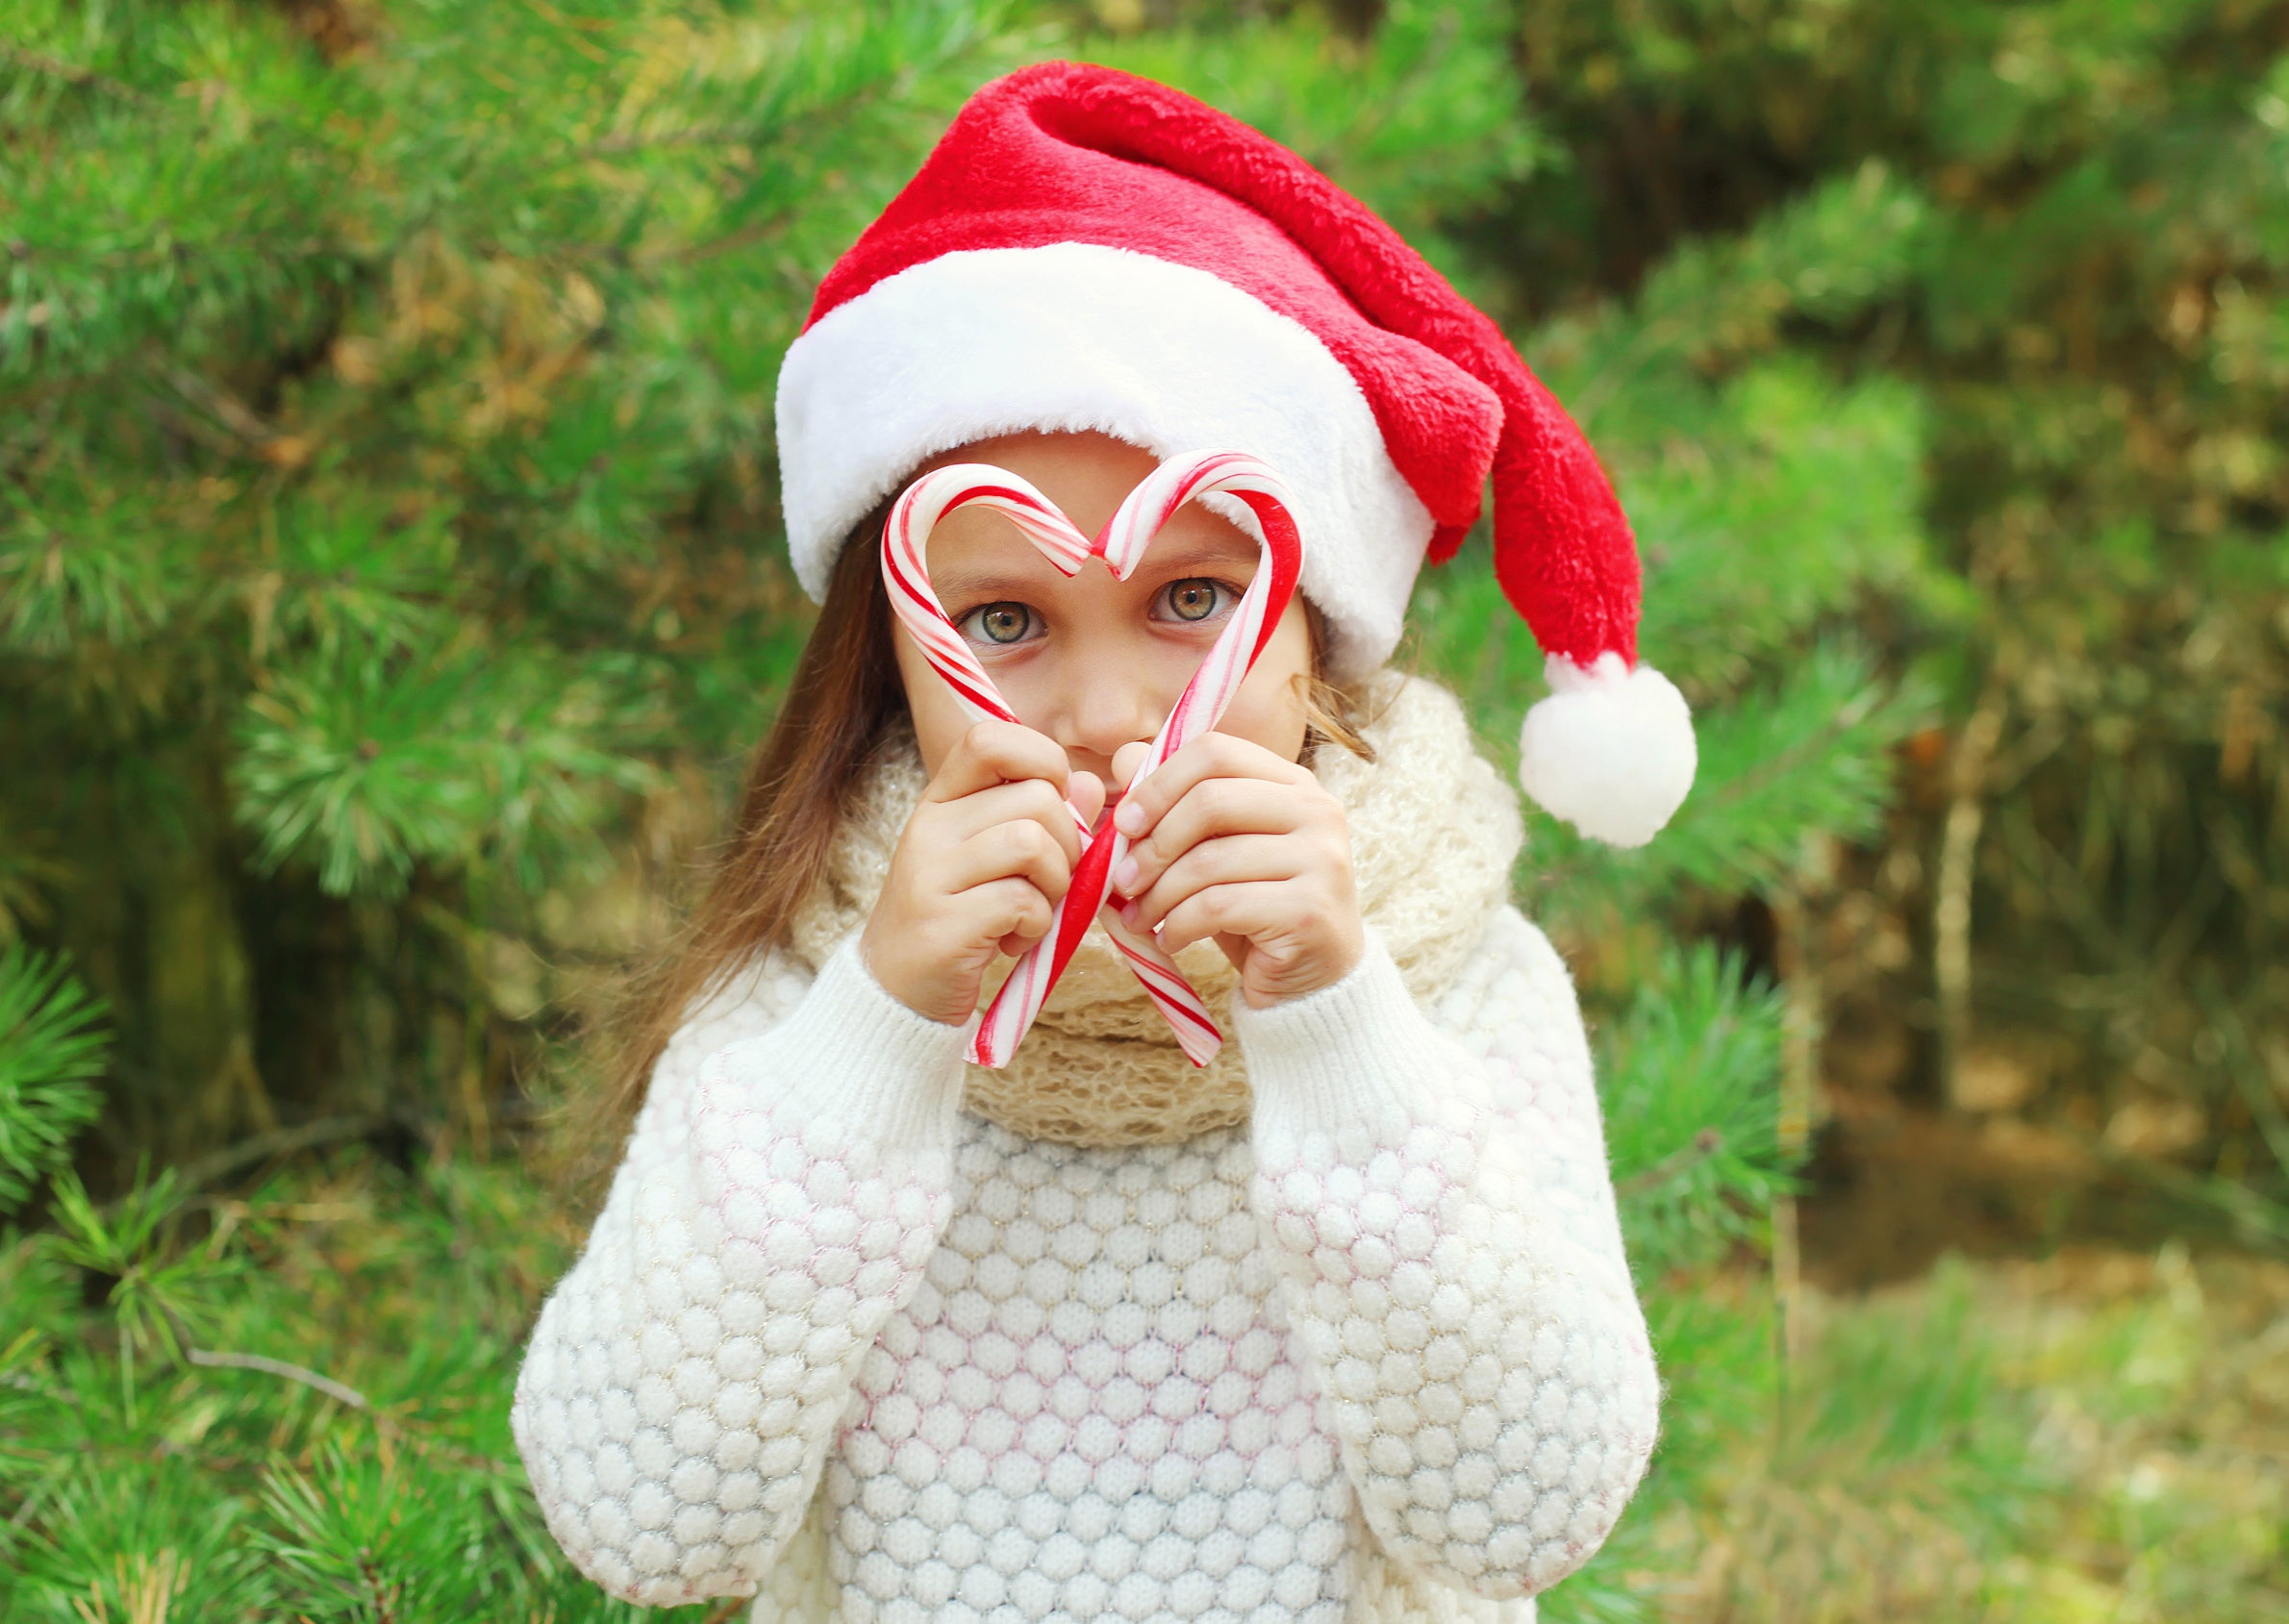 Holiday photo of a little girl holding candy canes and wearing a Santa hat outdoors